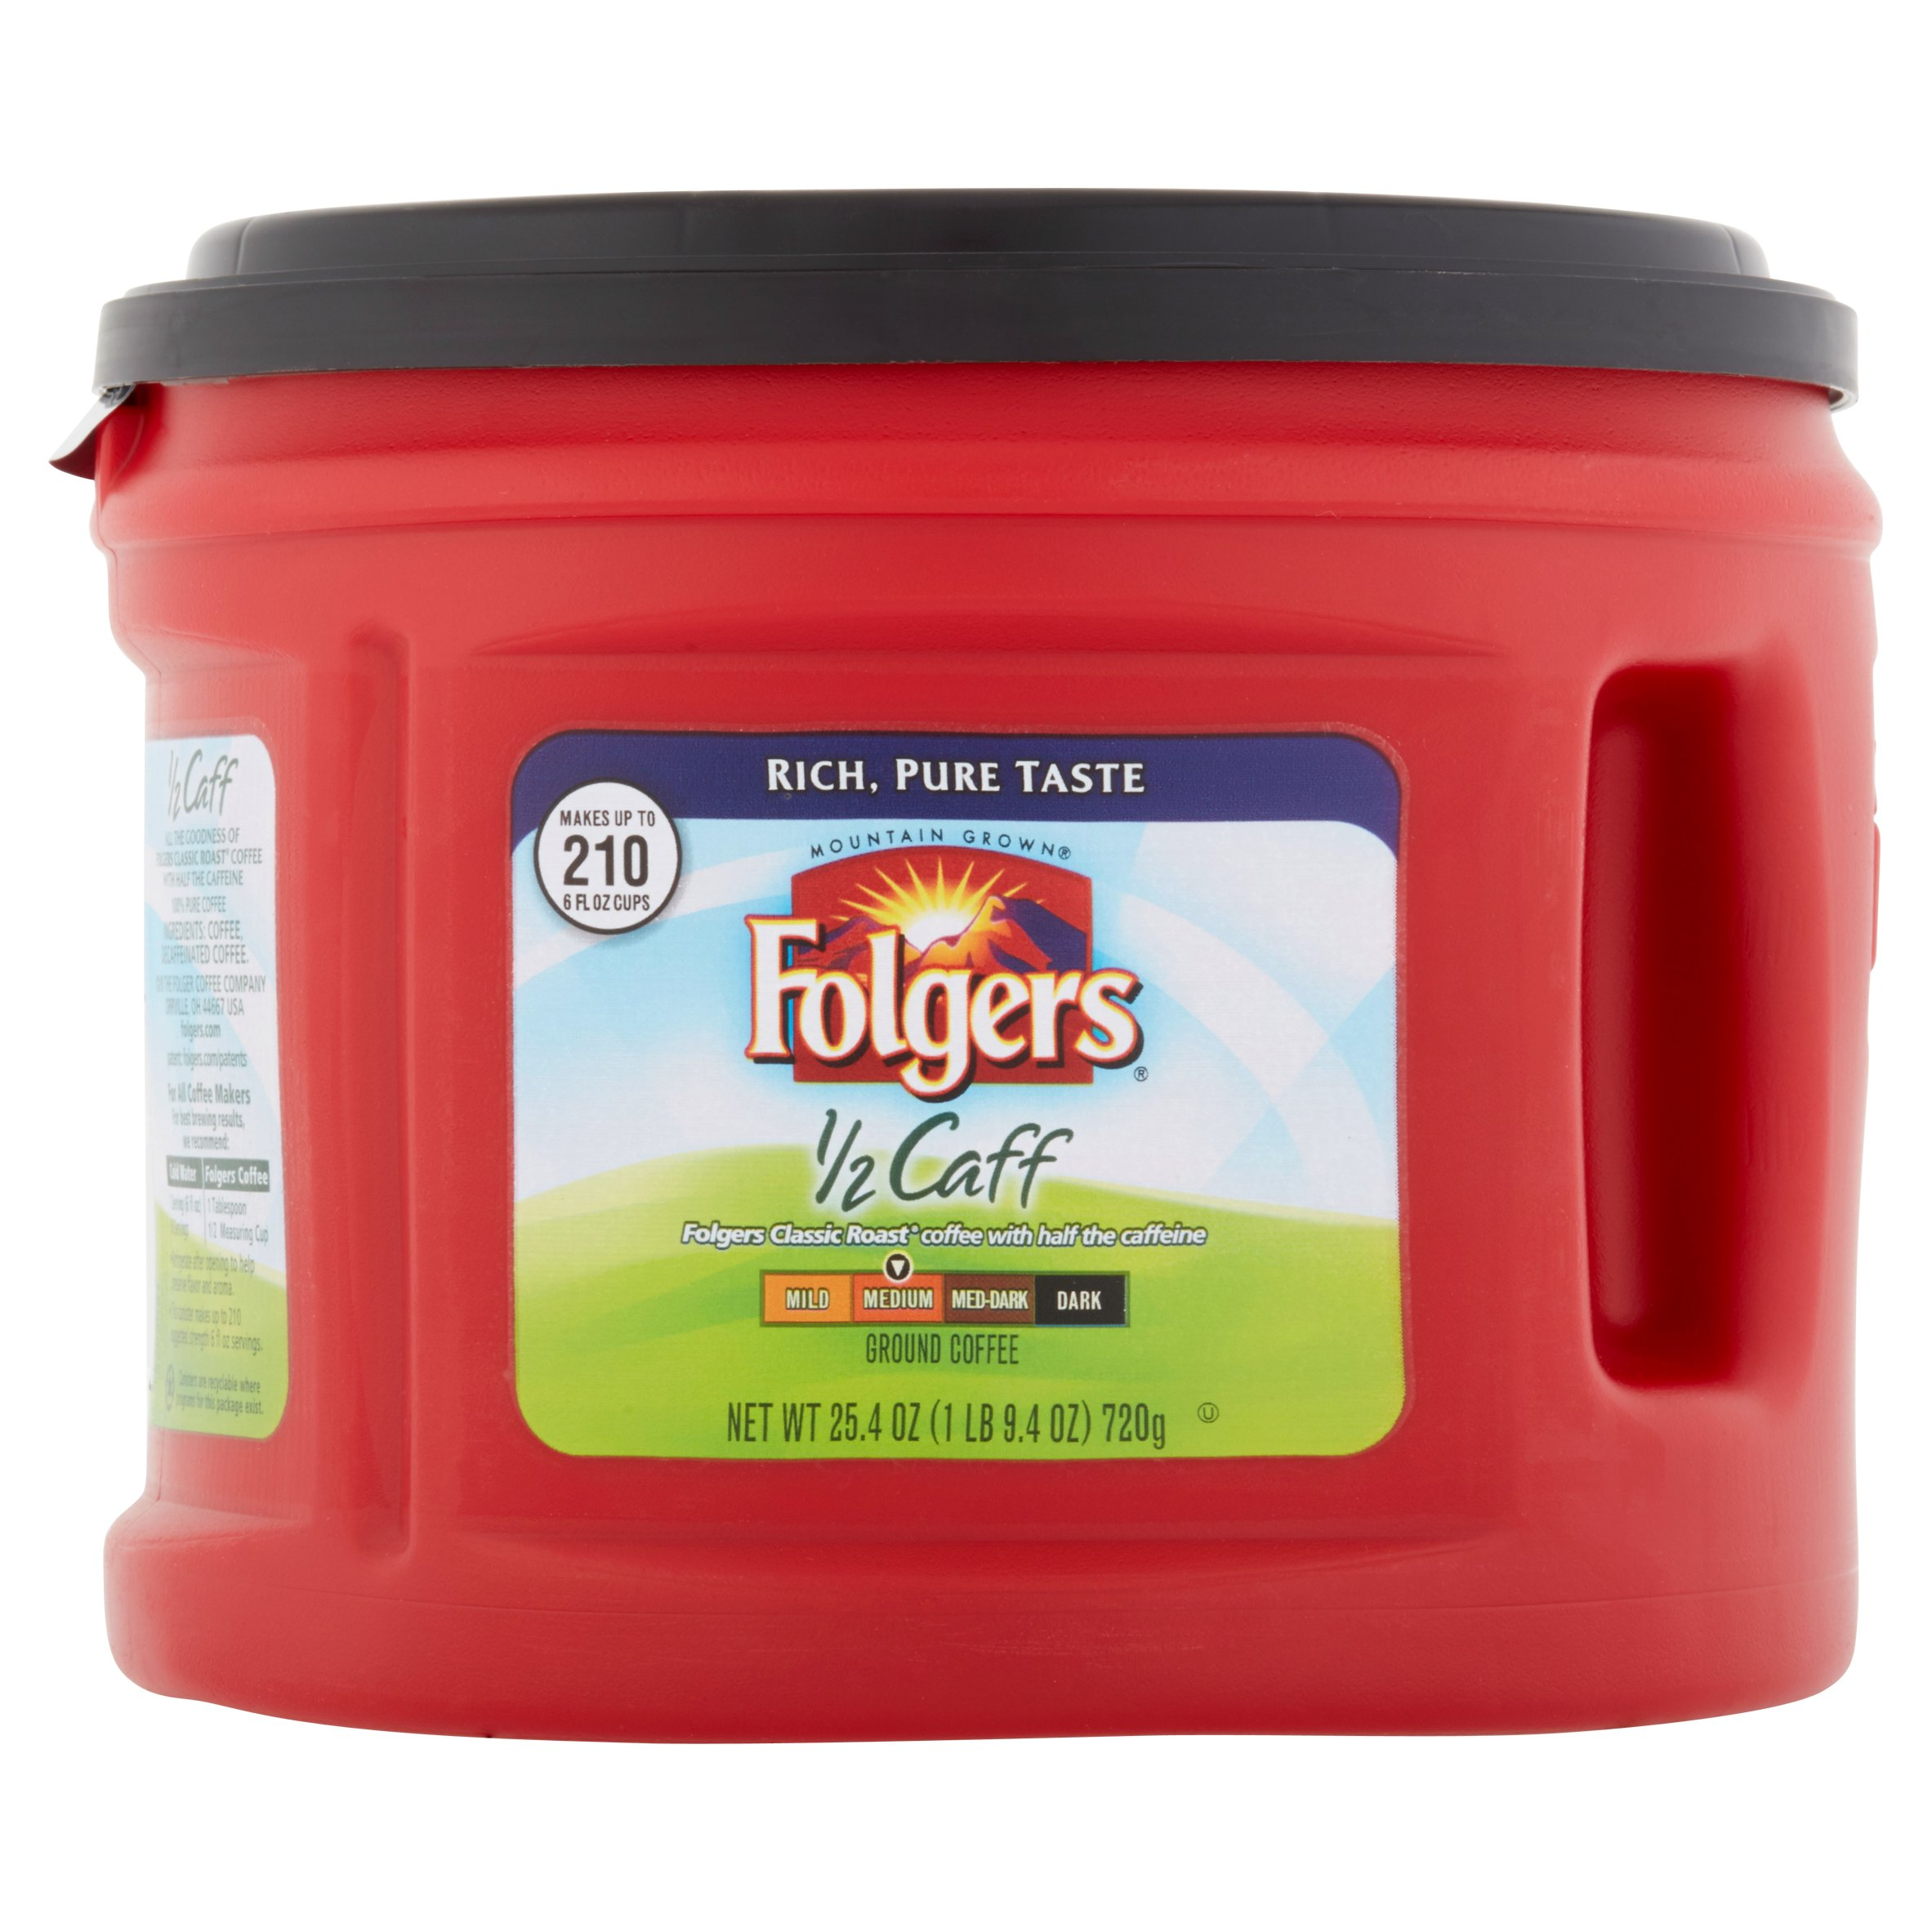 Folgers 1/2 Caff Medium Roast Ground Coffee, 25.4 oz